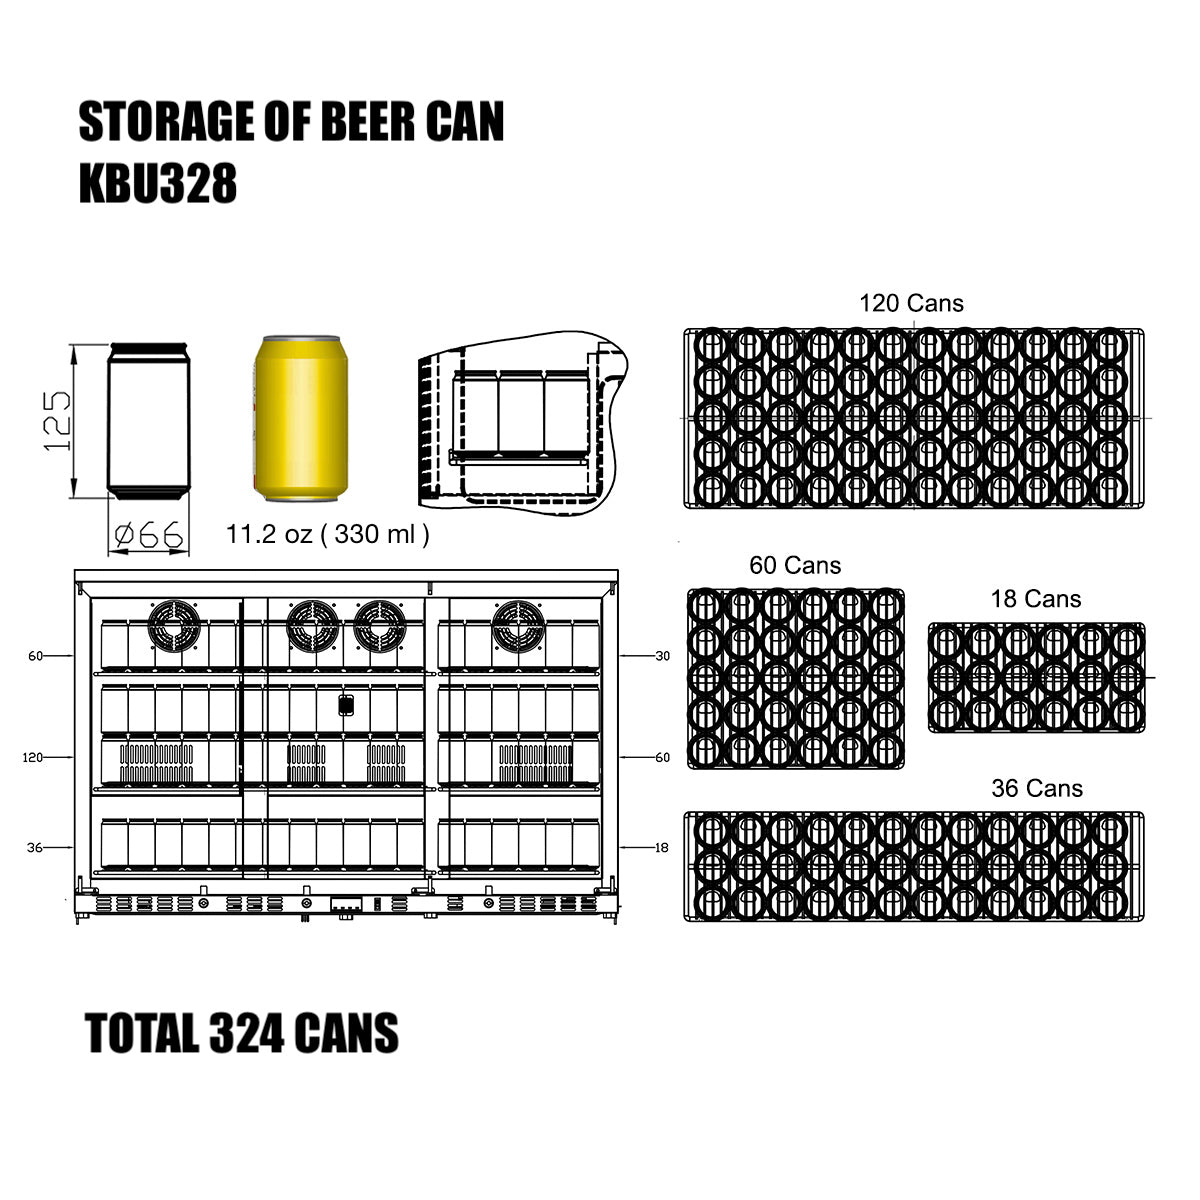 KBU328 Storage of Beer Can